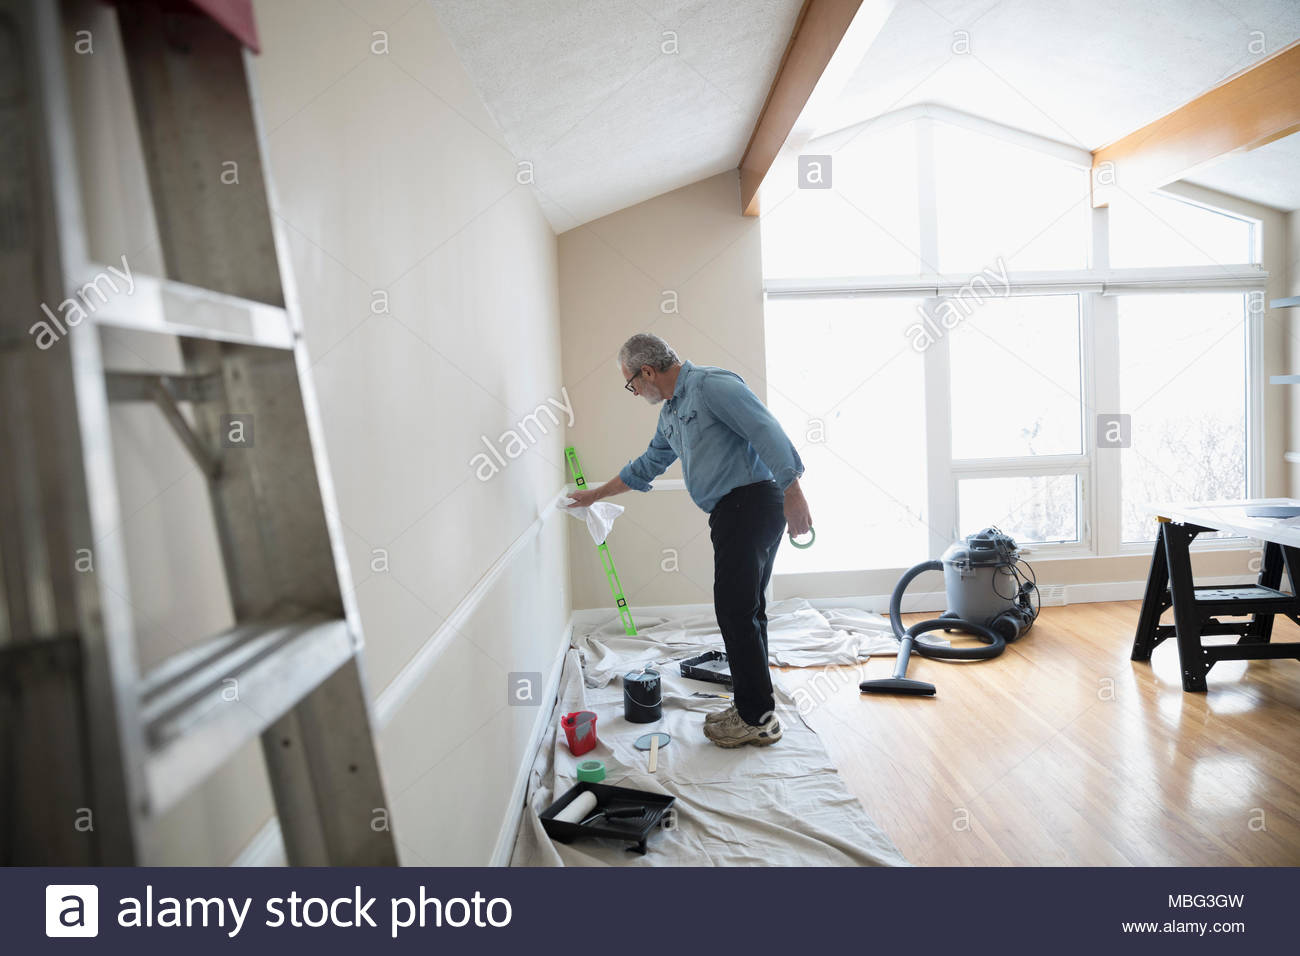 Chair Rail Orientation Part - 49: Senior Man Painting Chair Rail In Living Room, DIY - Stock Image